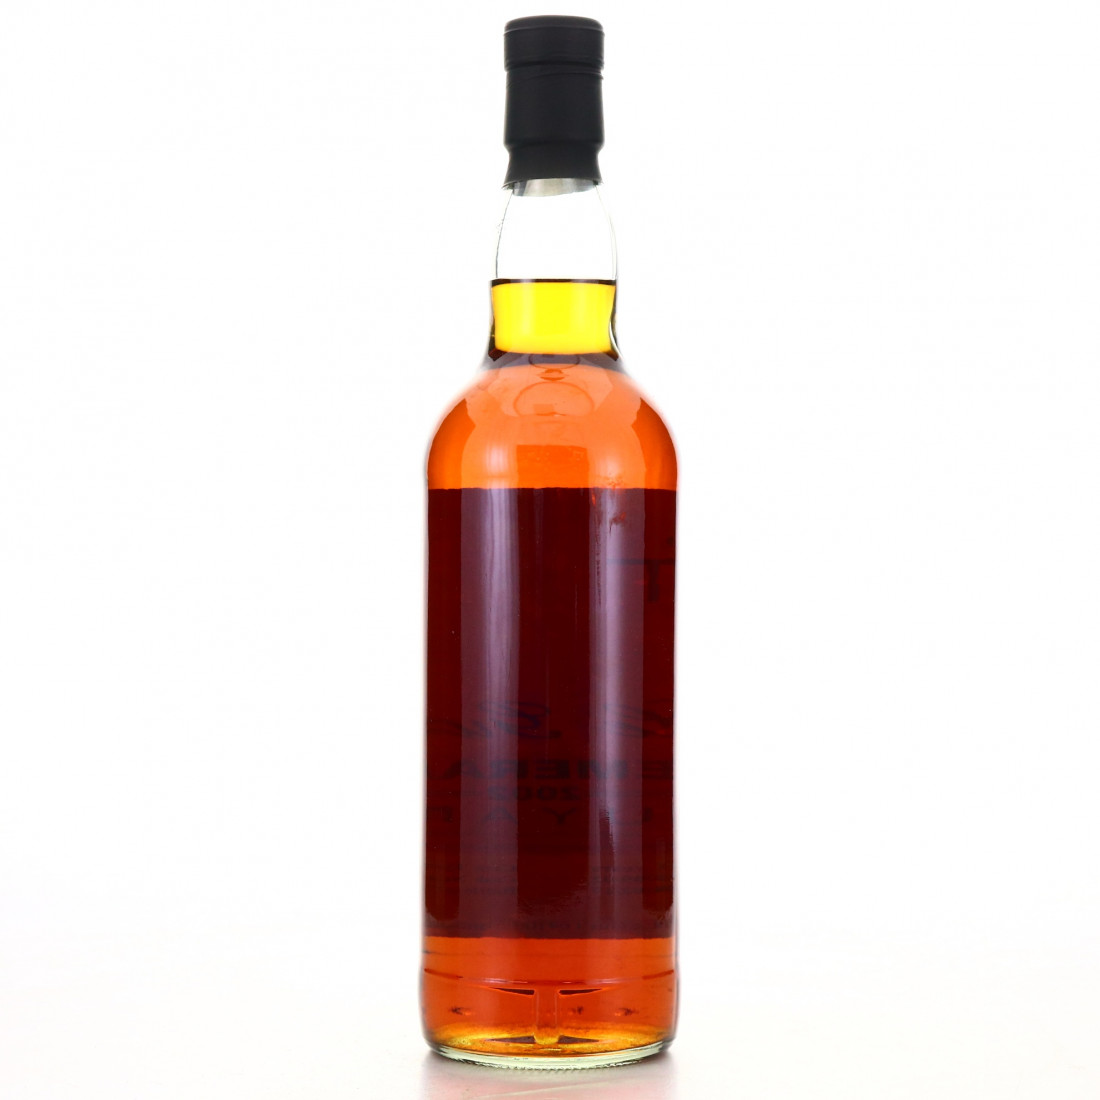 Demerara Rum 2002 Le Gus't 14 Year Old Optimum Proof